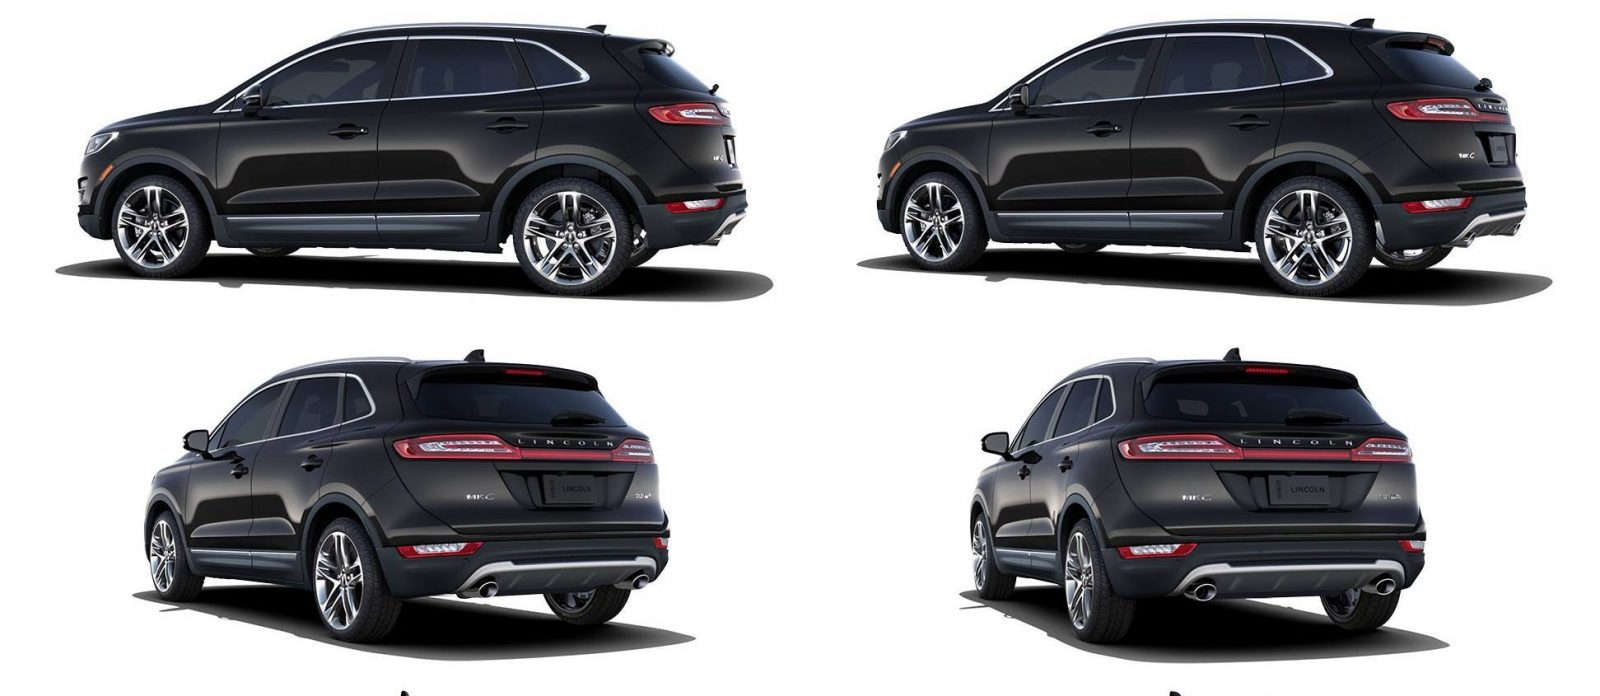 2015 Lincoln MKC Crossover - A Cool Mix of Infiniti and Audi105